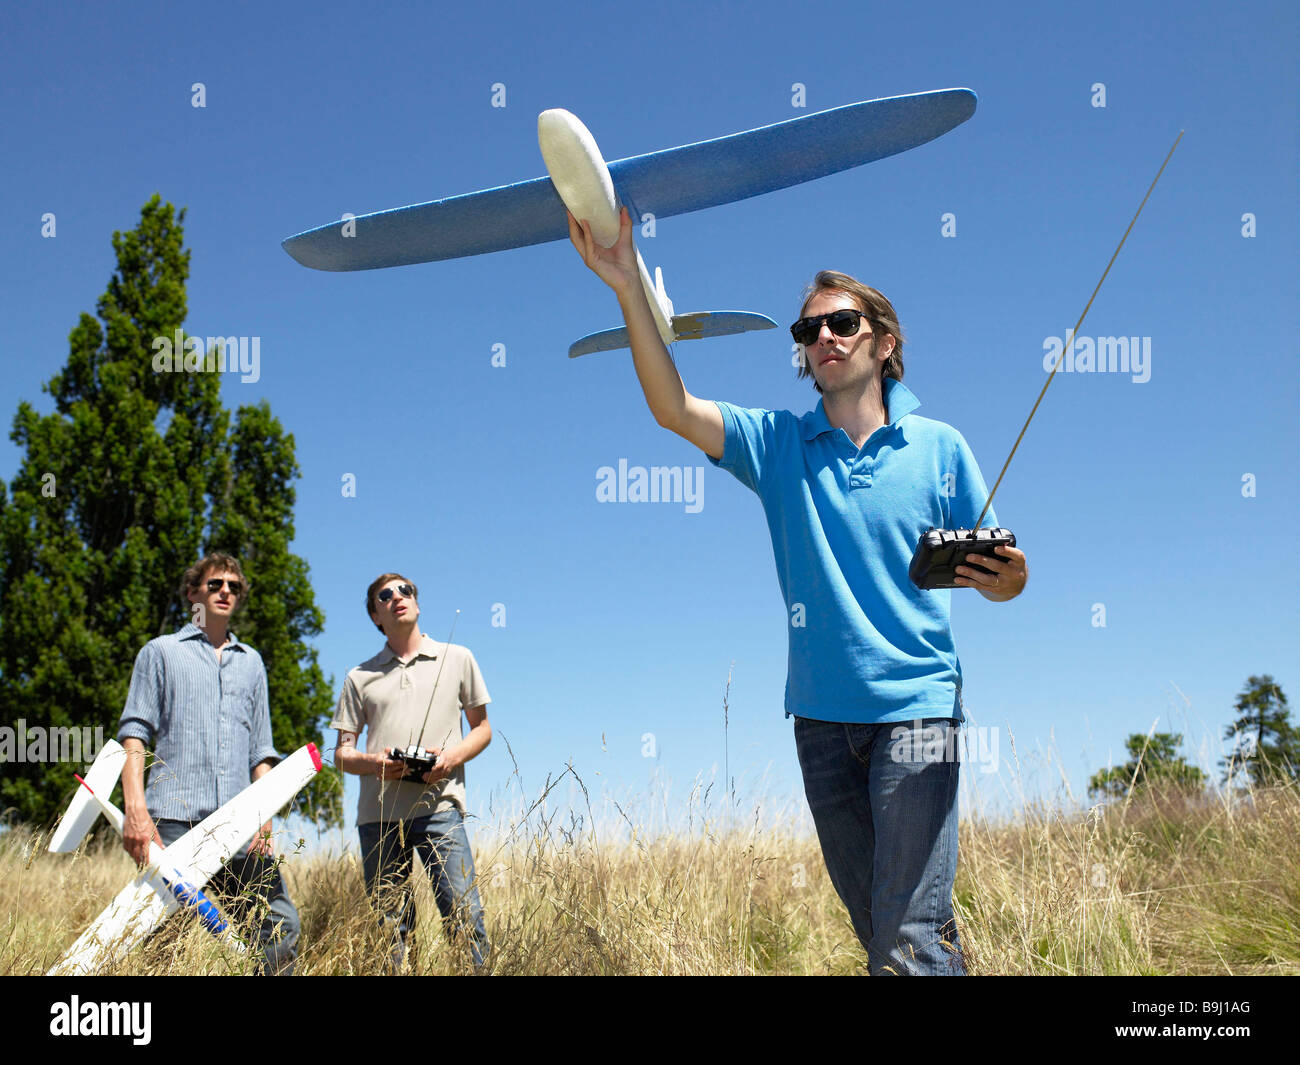 Men playing with remote-controlled plane - Stock Image